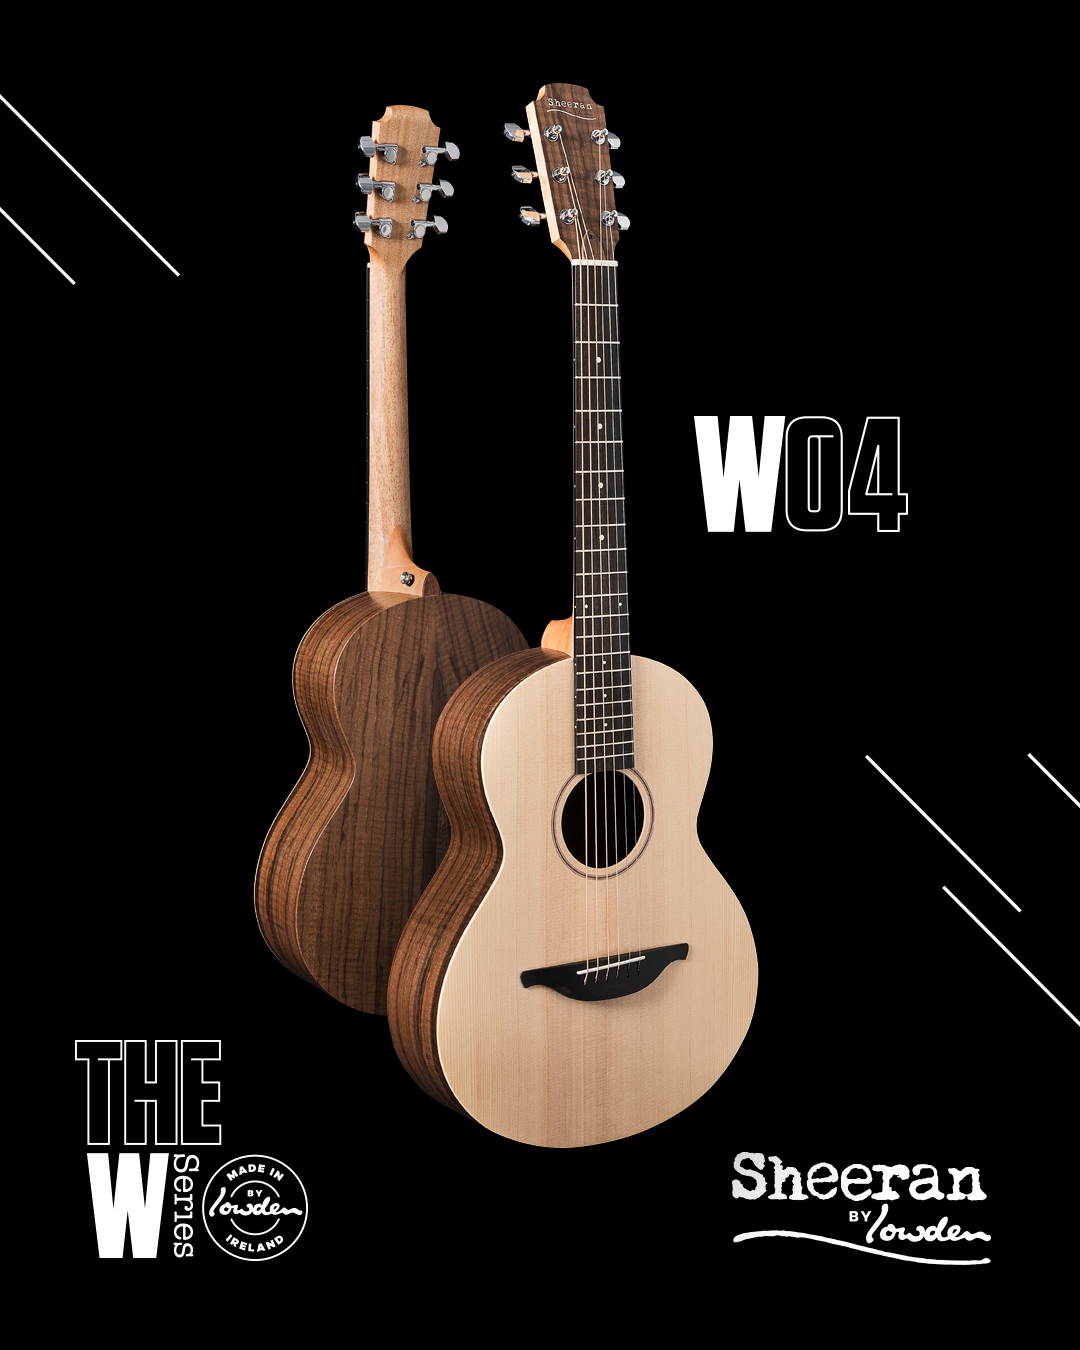 Sheeran by Lowden W-04 Sitka/Figured Walnut Guitar w/ LR Baggs Pickup (PRE ORDER)